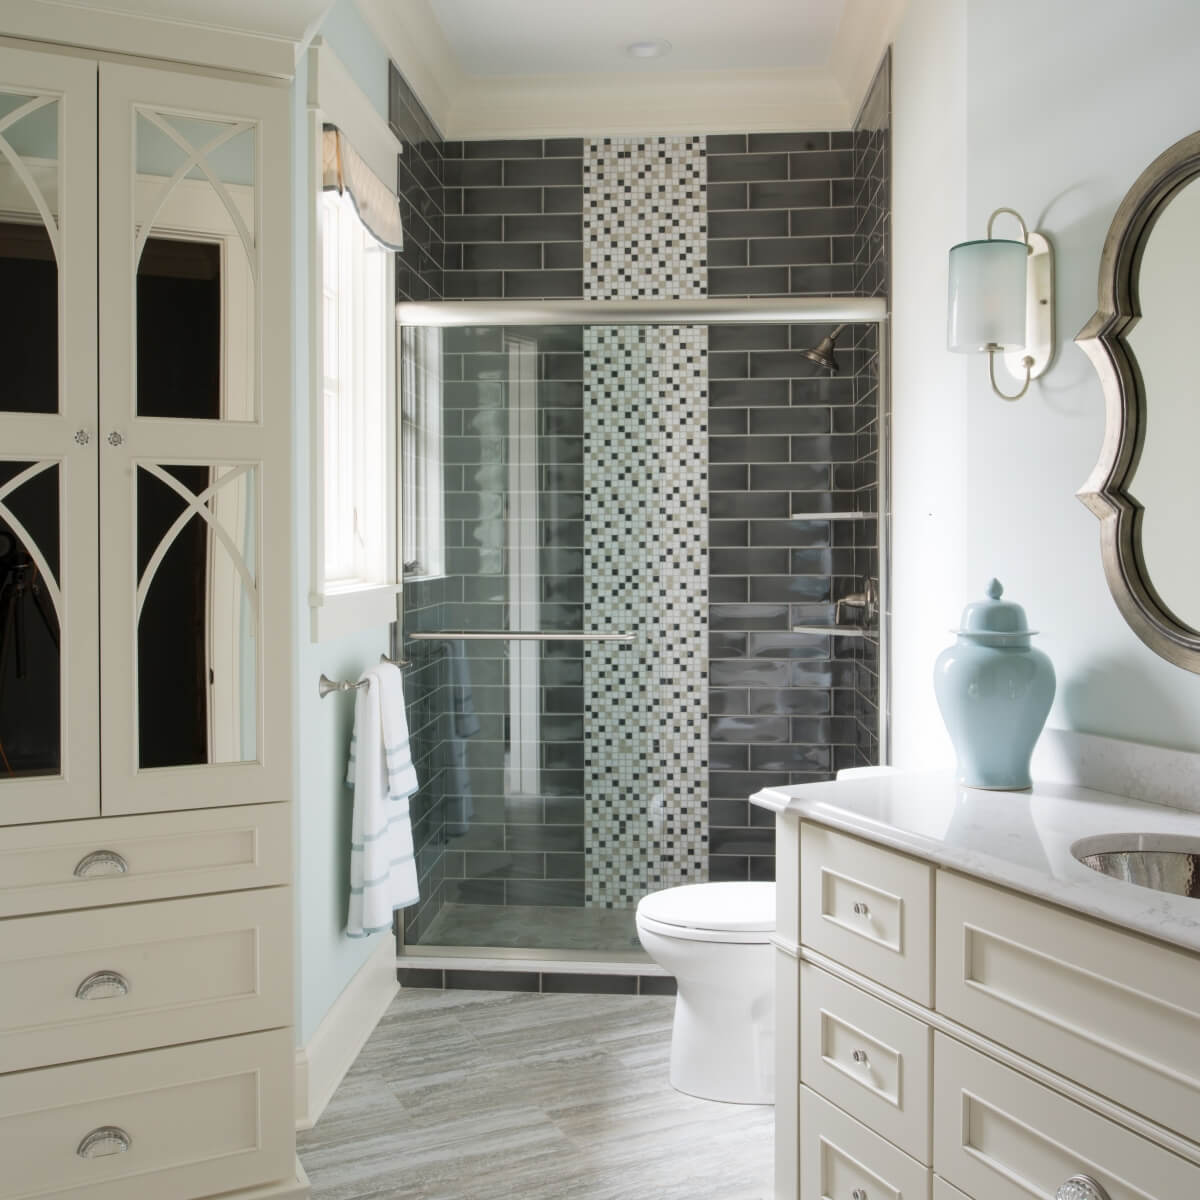 A stunning all white master bathroom with beautiful mullion cabinet doors with mirror glass inserts.